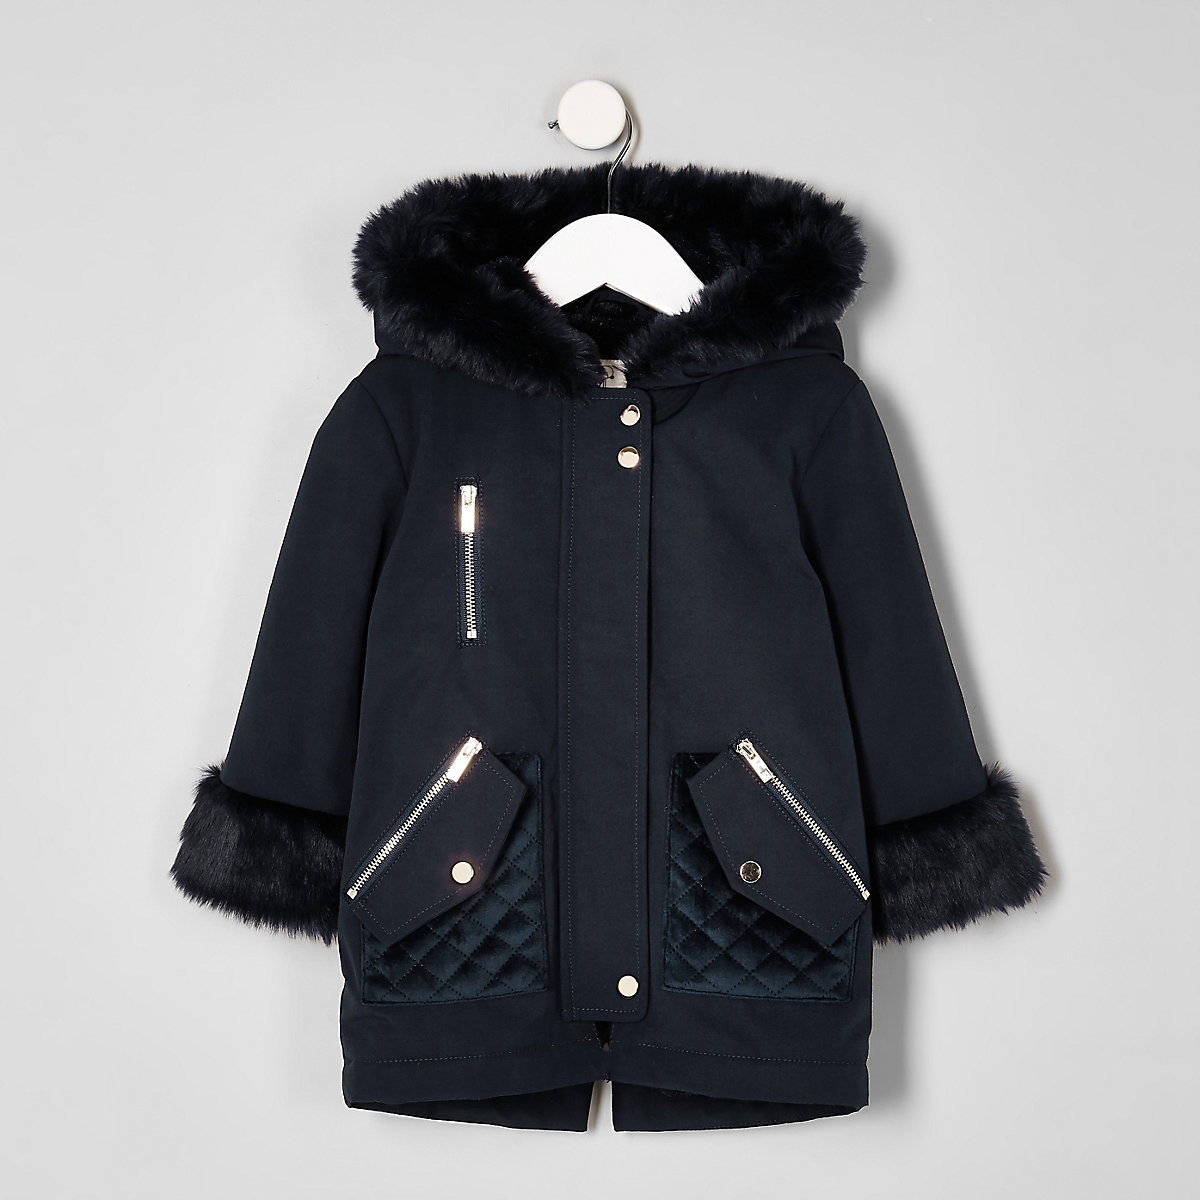 88cfa4781c52 Mini girls navy faux fur trim parka jacket - Baby Girls Coats ...